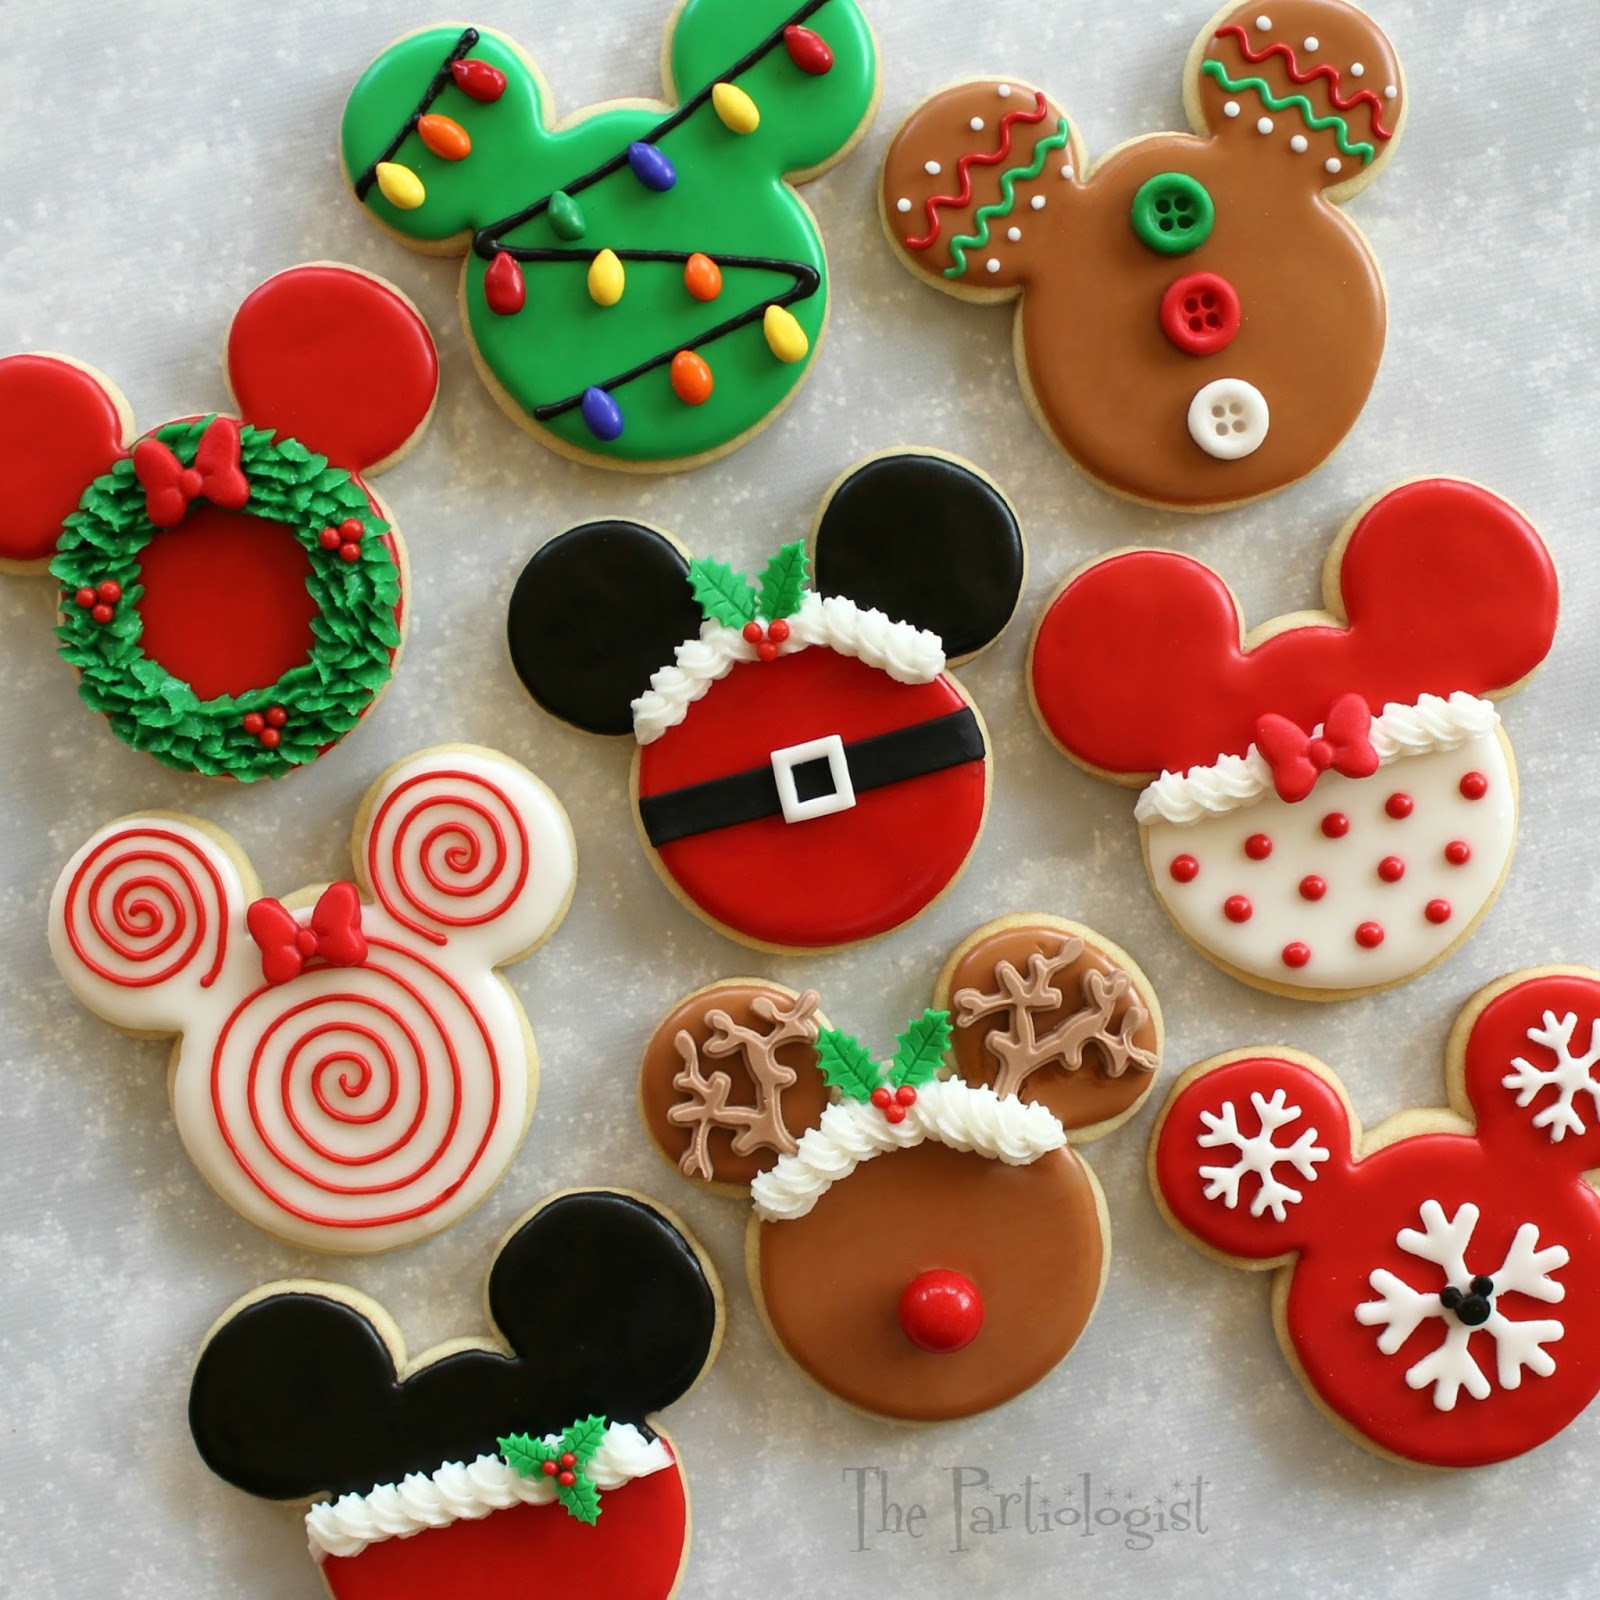 Mickey Christmas Cookies  The Partiologist Disney Themed Christmas Cookies